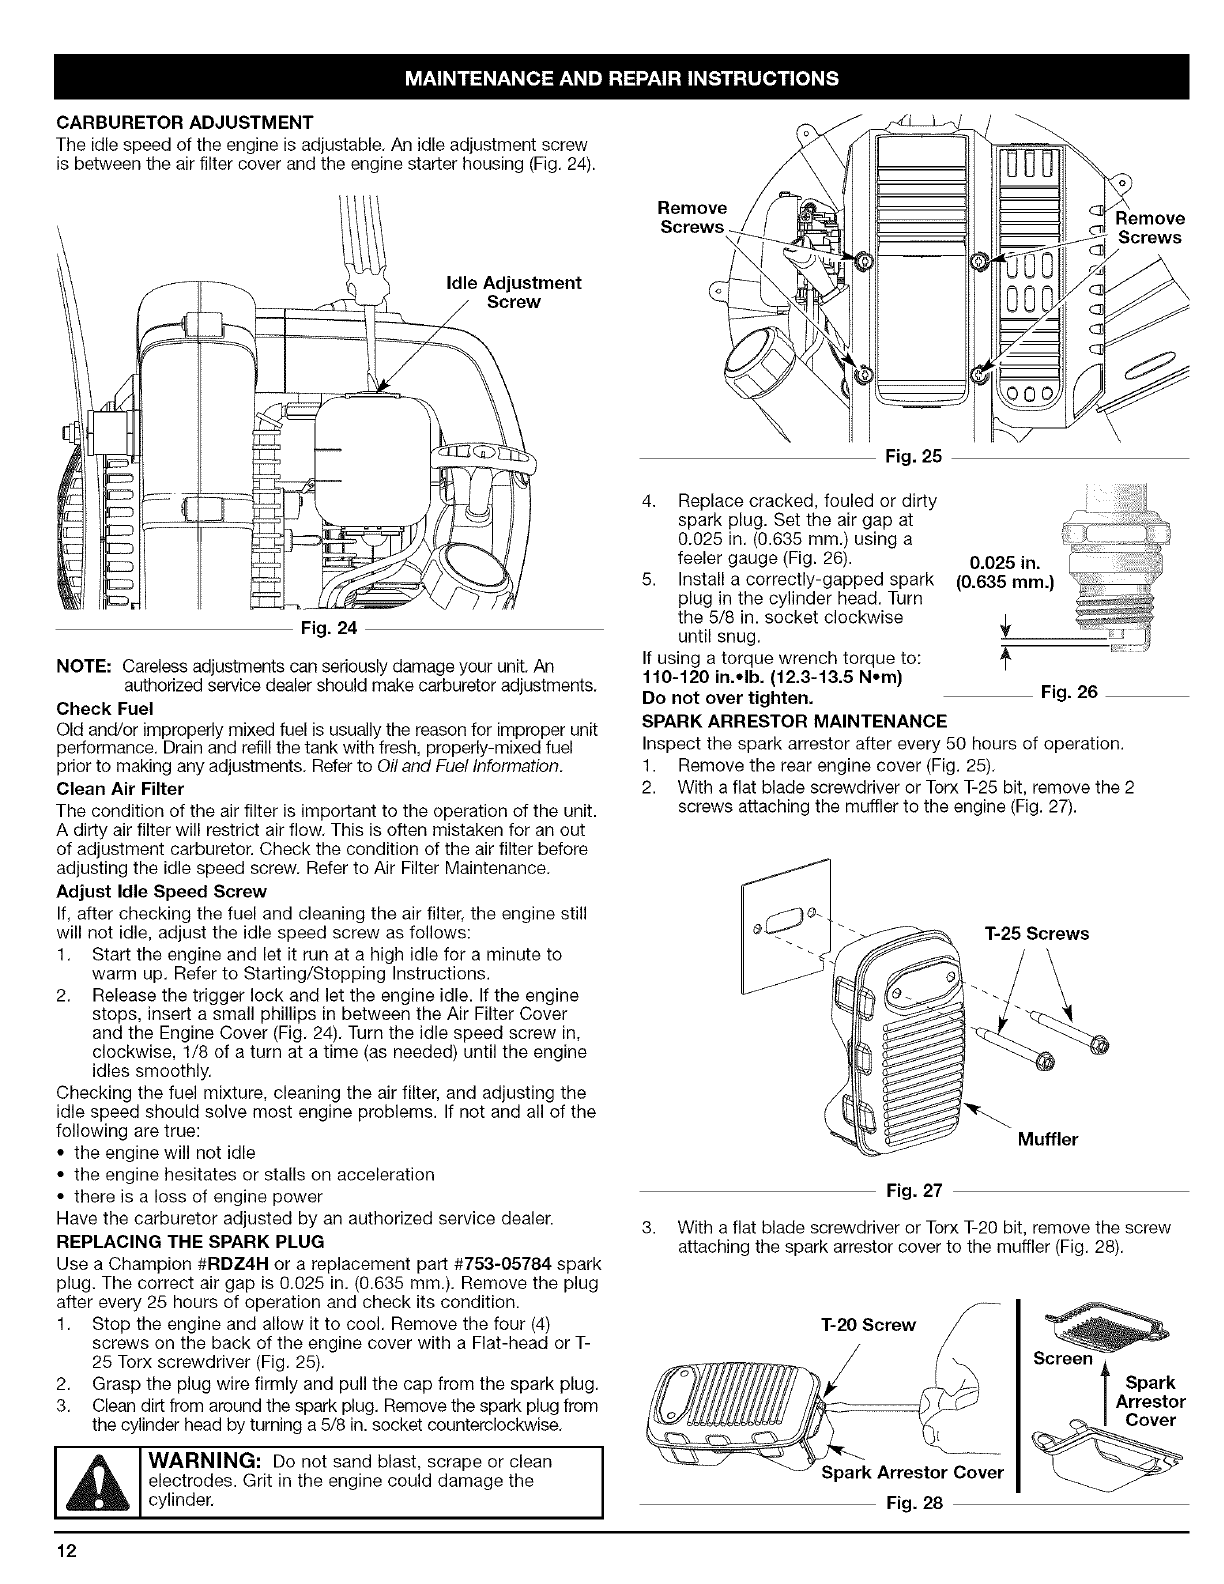 Page 12 of Craftsman Blower 316.79479 User Guide